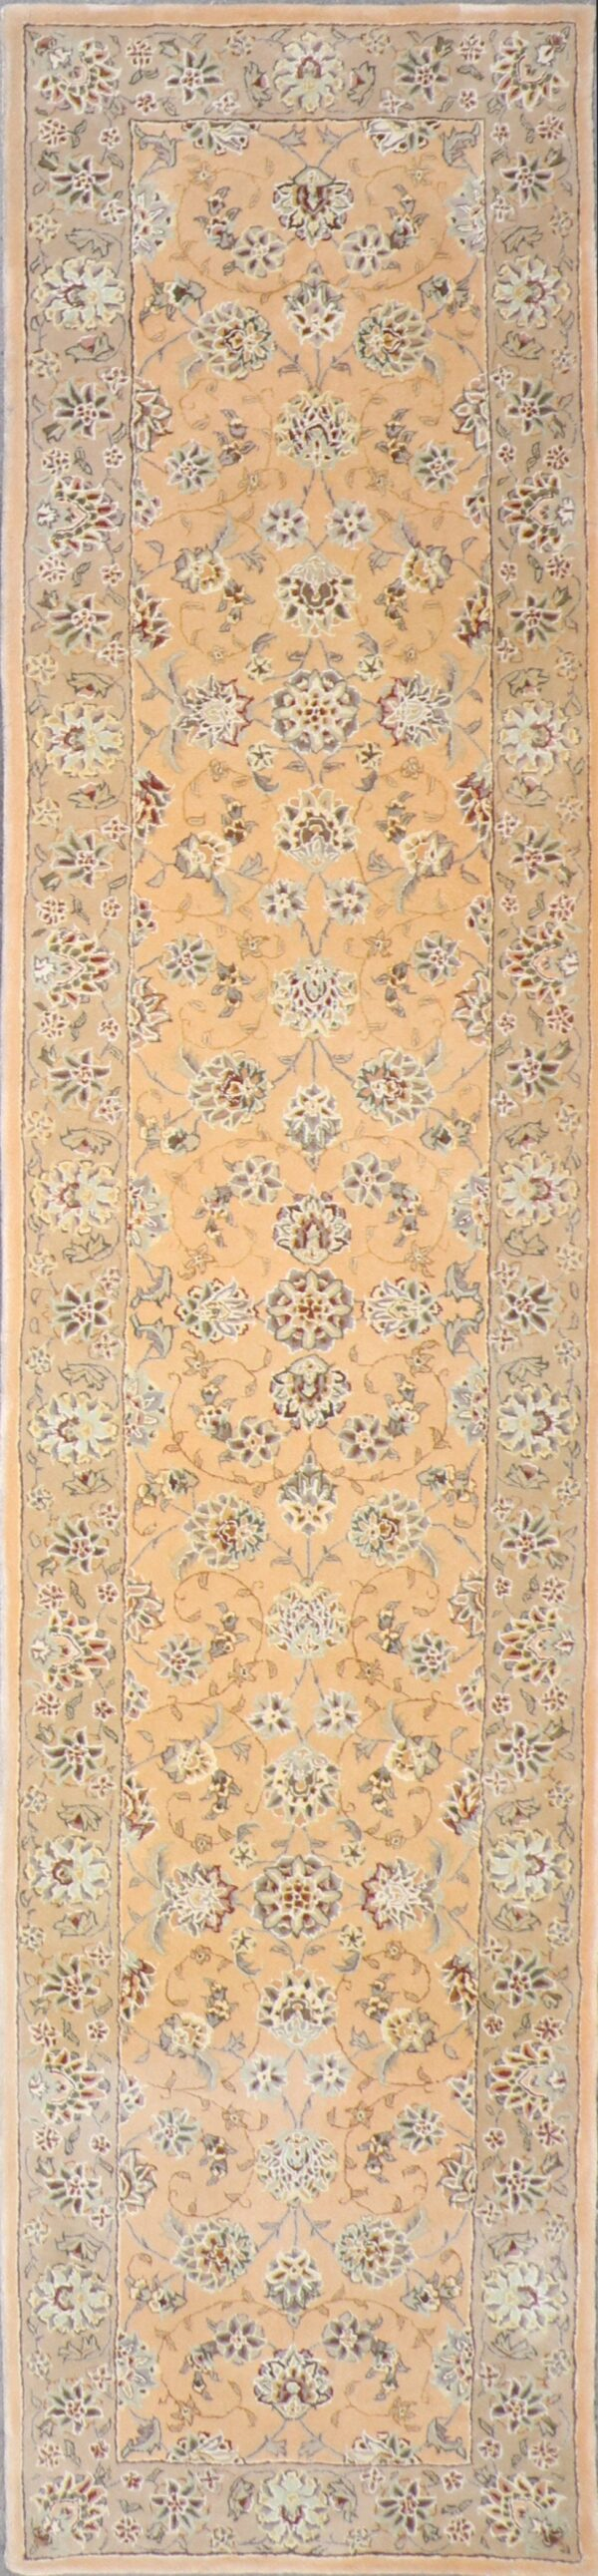 """2'8""""x11'7"""" Decorative Tabriz Wool & Silk Hand-Tufted Rug - Direct Rug Import 